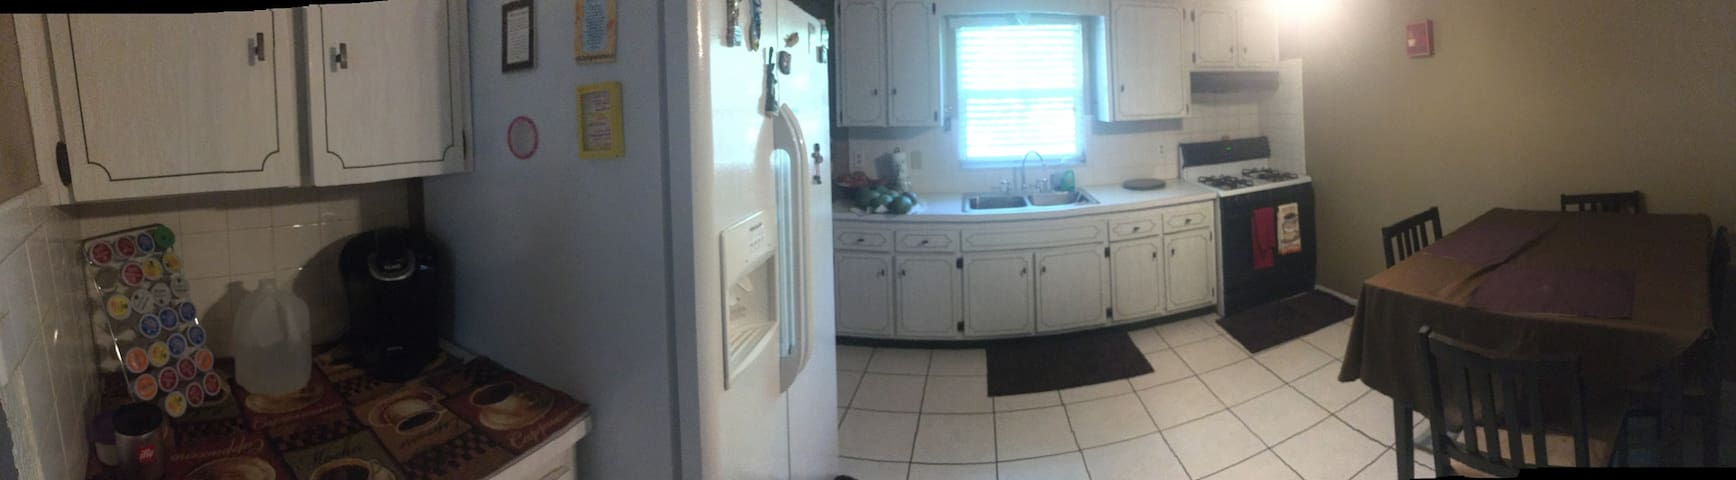 Kitchen area fully equipped, with a dining table & Keurig coffee available for guest.